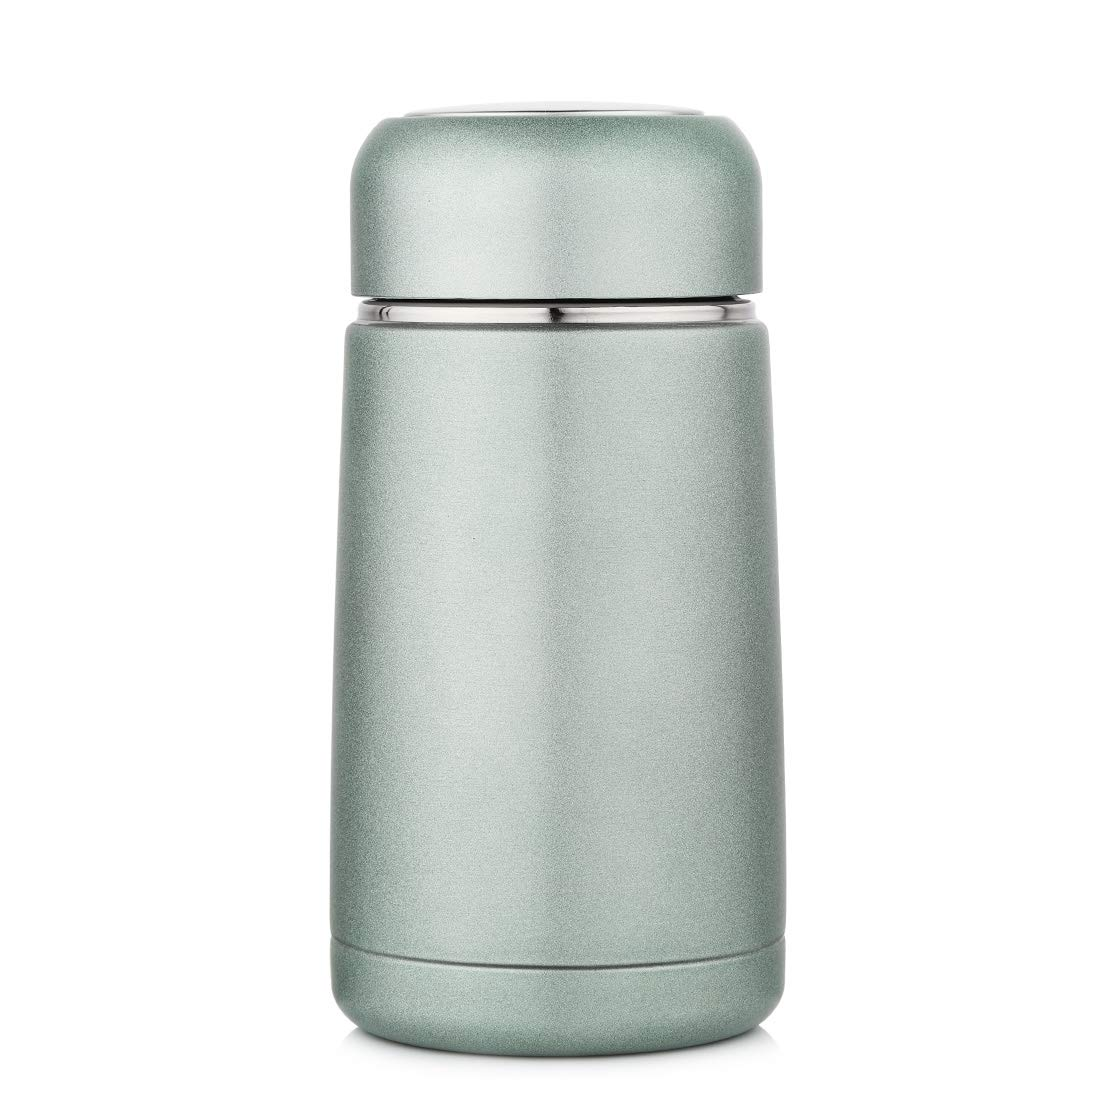 d940a95ed08 JIAQI Mini Water Bottle BPA Free, 10 oz Stainless Steel Travel Coffee Mug  with Tea Infuser, Double Wall Vacuum Insulated Leak Proof Flask for ...